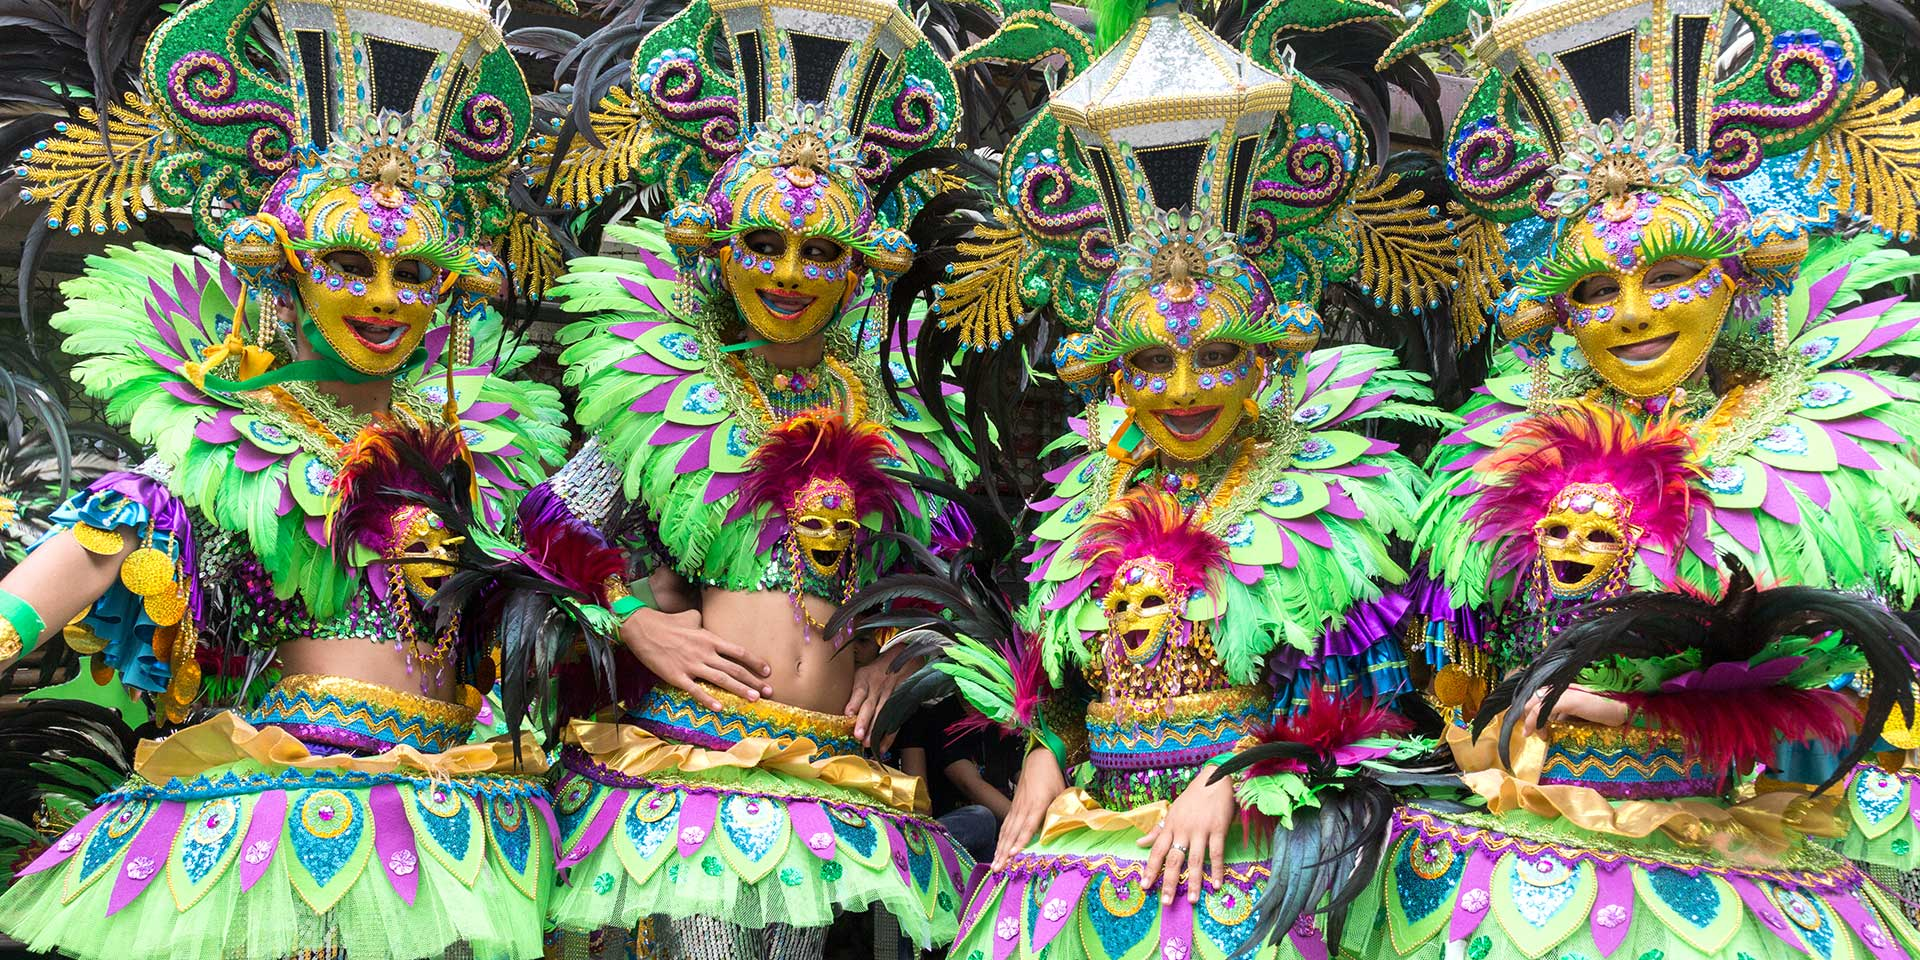 Bacolod Masskara: Festival of Faces